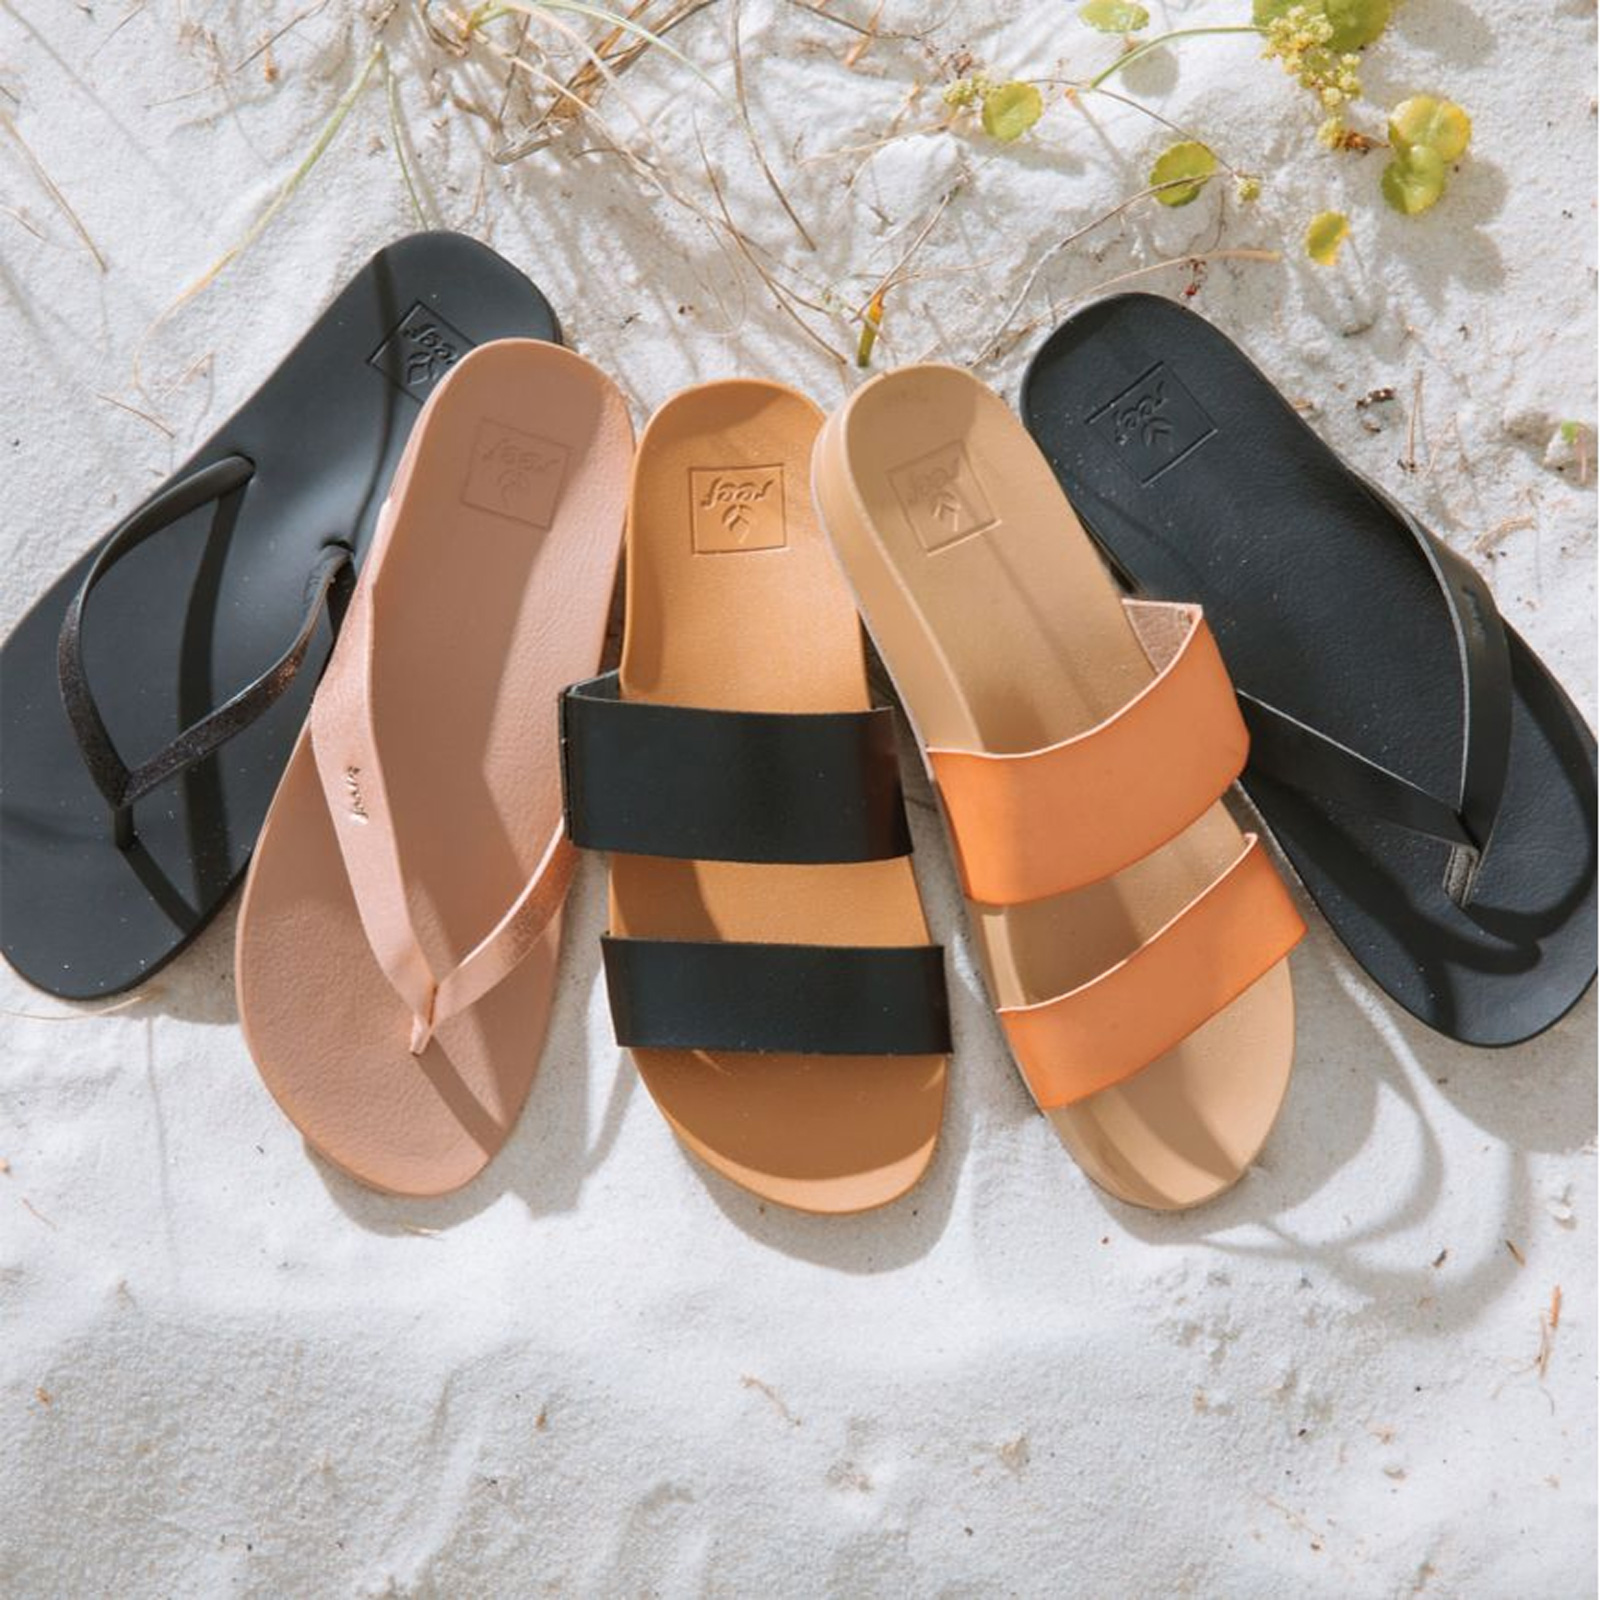 Anatomic Flip Flops With Beige Straps From Natural Vegan Leather Cushion Bounce Vista Natural